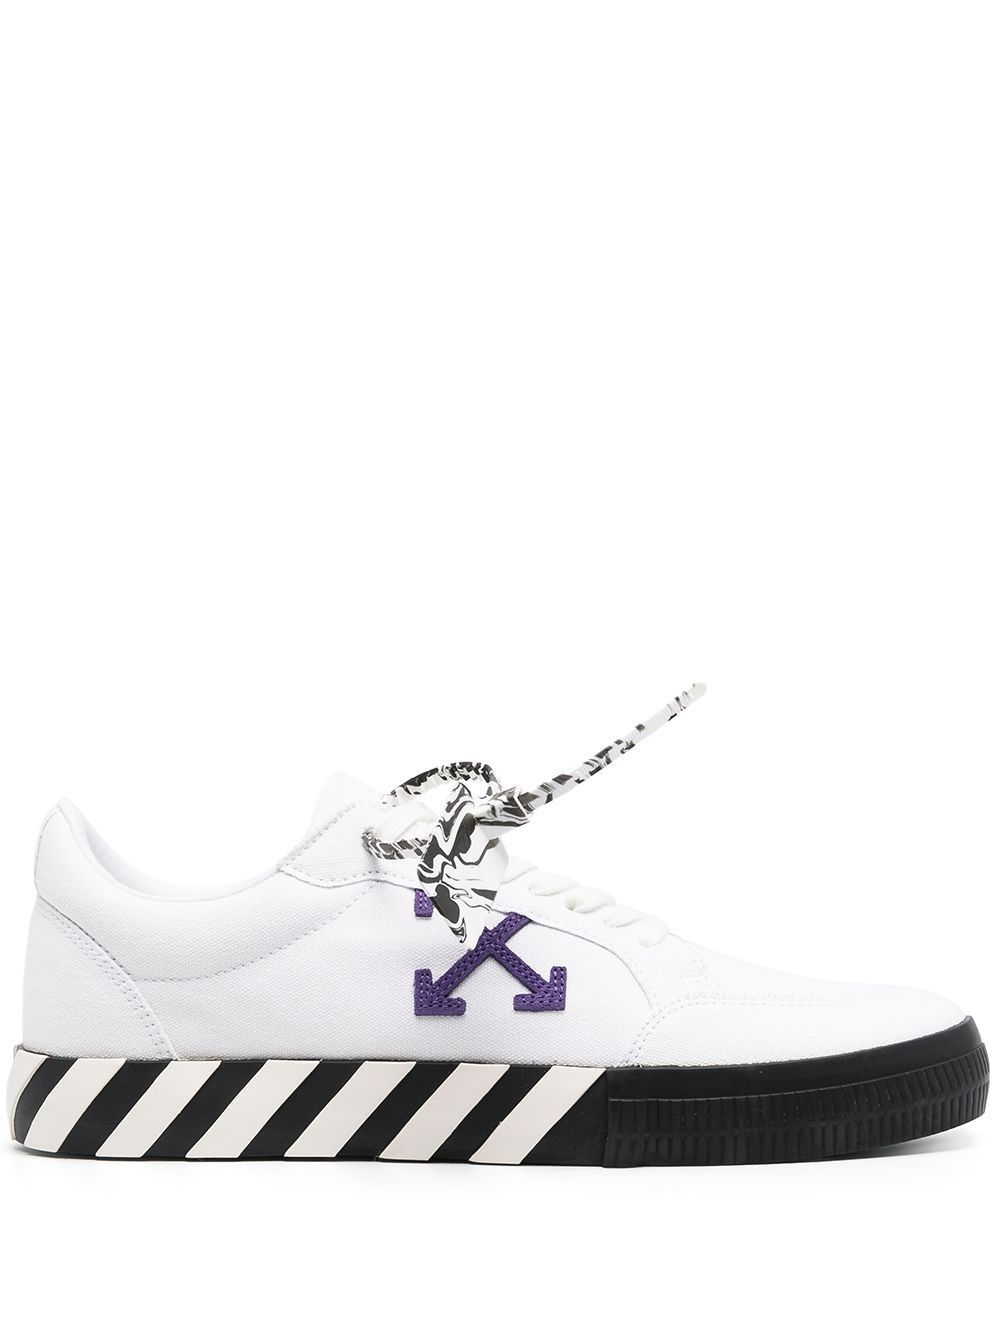 OFF-WHITE Low Vulcanized Canvas Sneakers White/Purple - Maison De Fashion